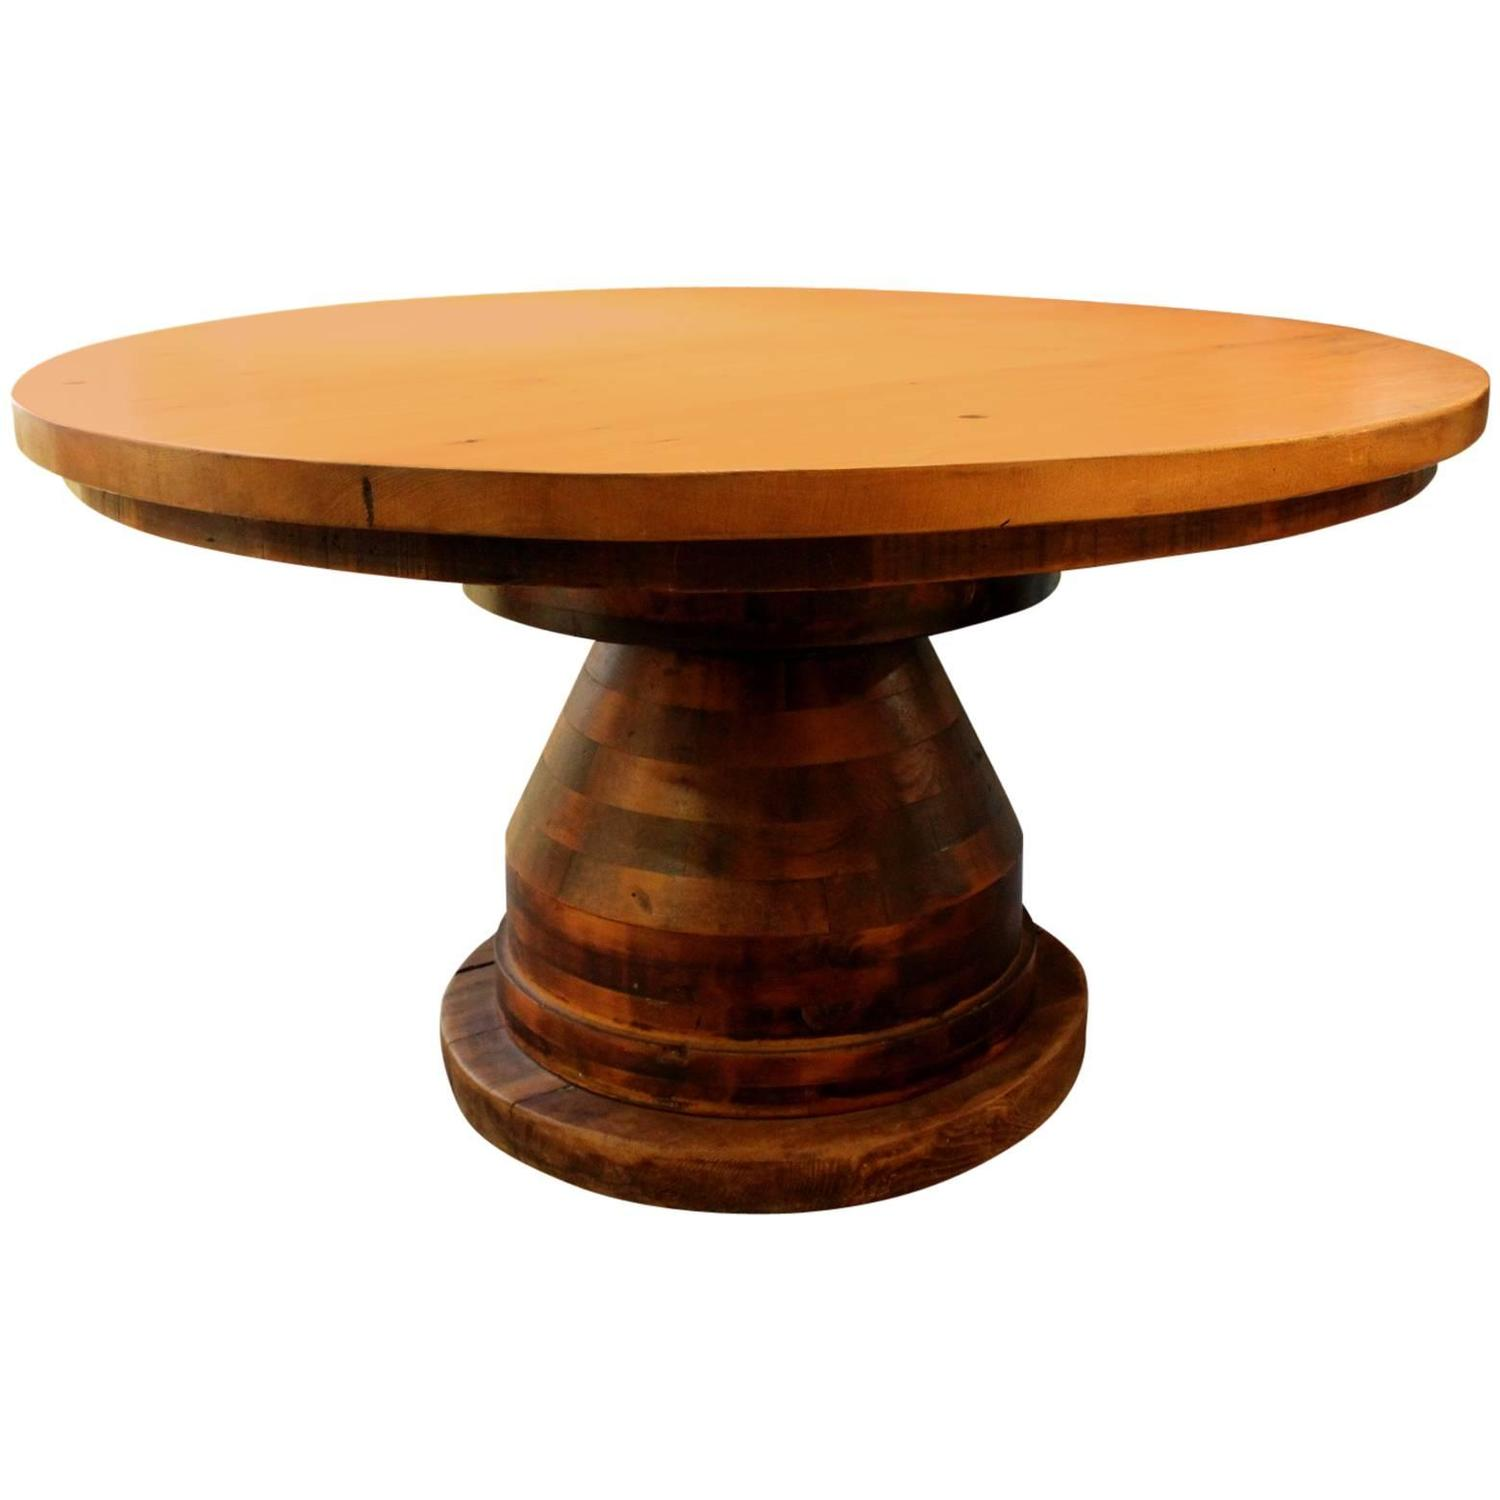 Center Table Wood : Industrial Wood Round Dining Center Table at 1stdibs